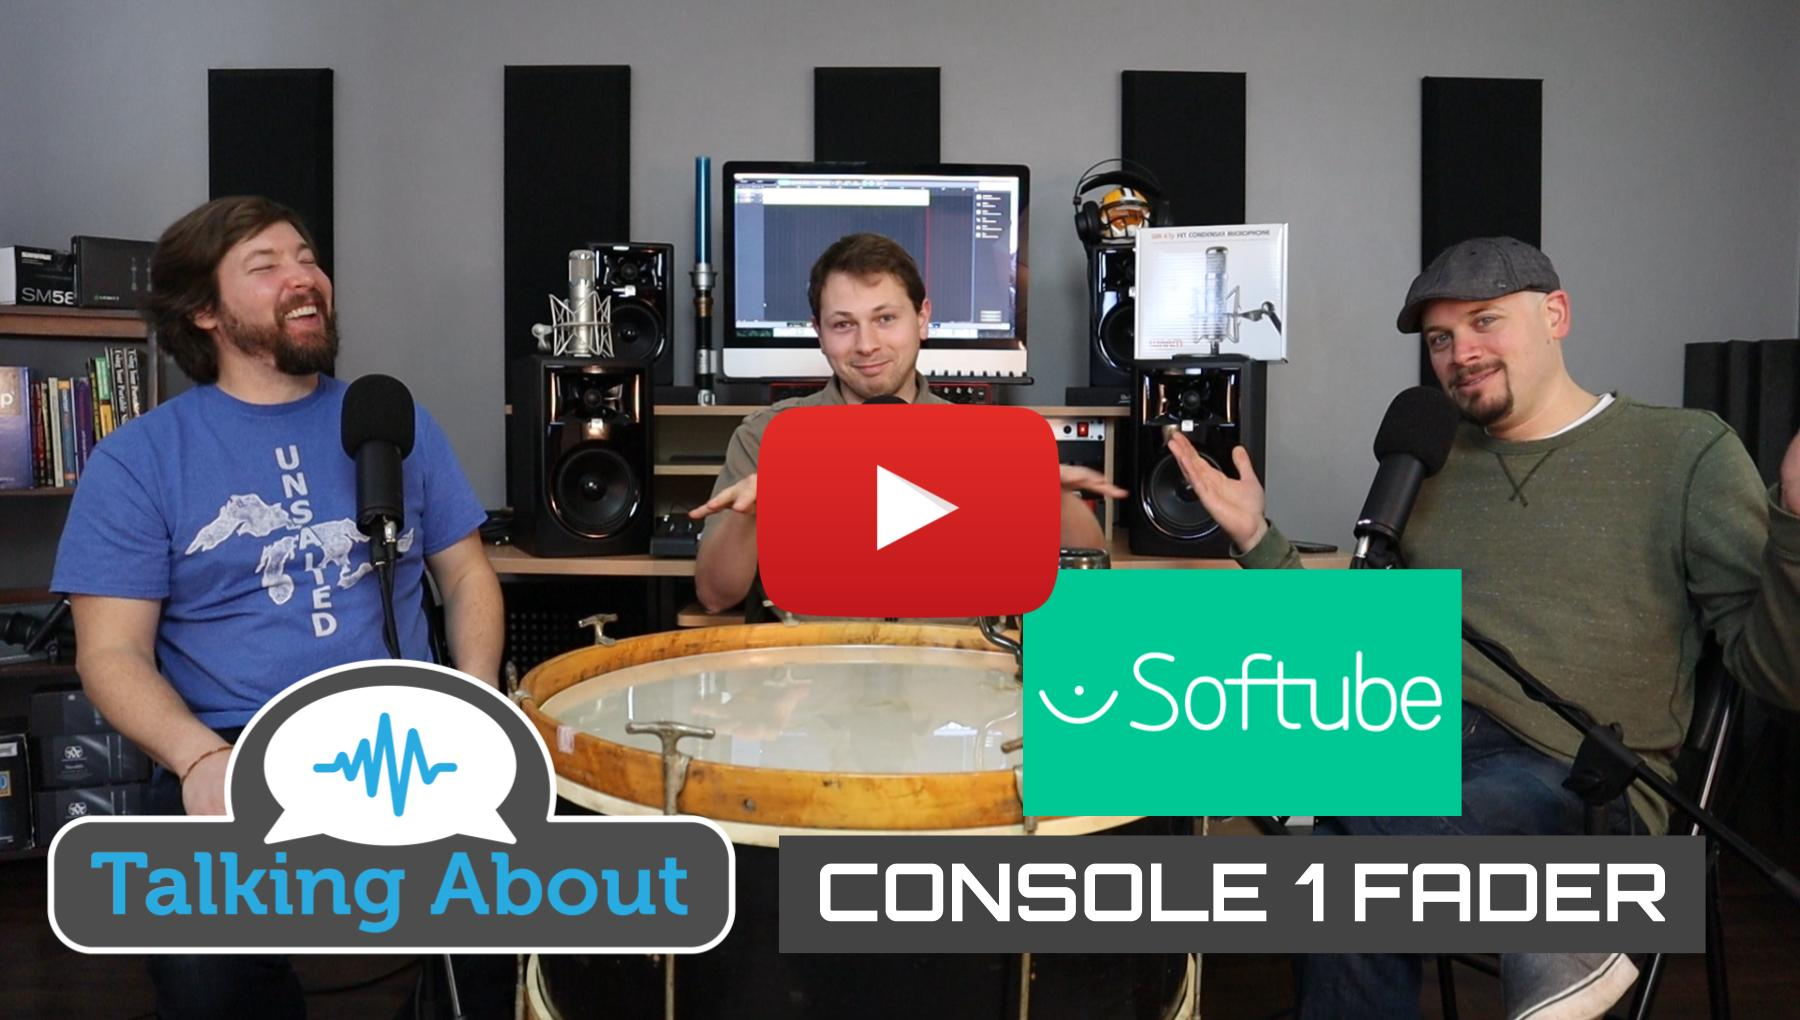 Weekly Show - PPA Unfiltered - Softube Console 1 Fader